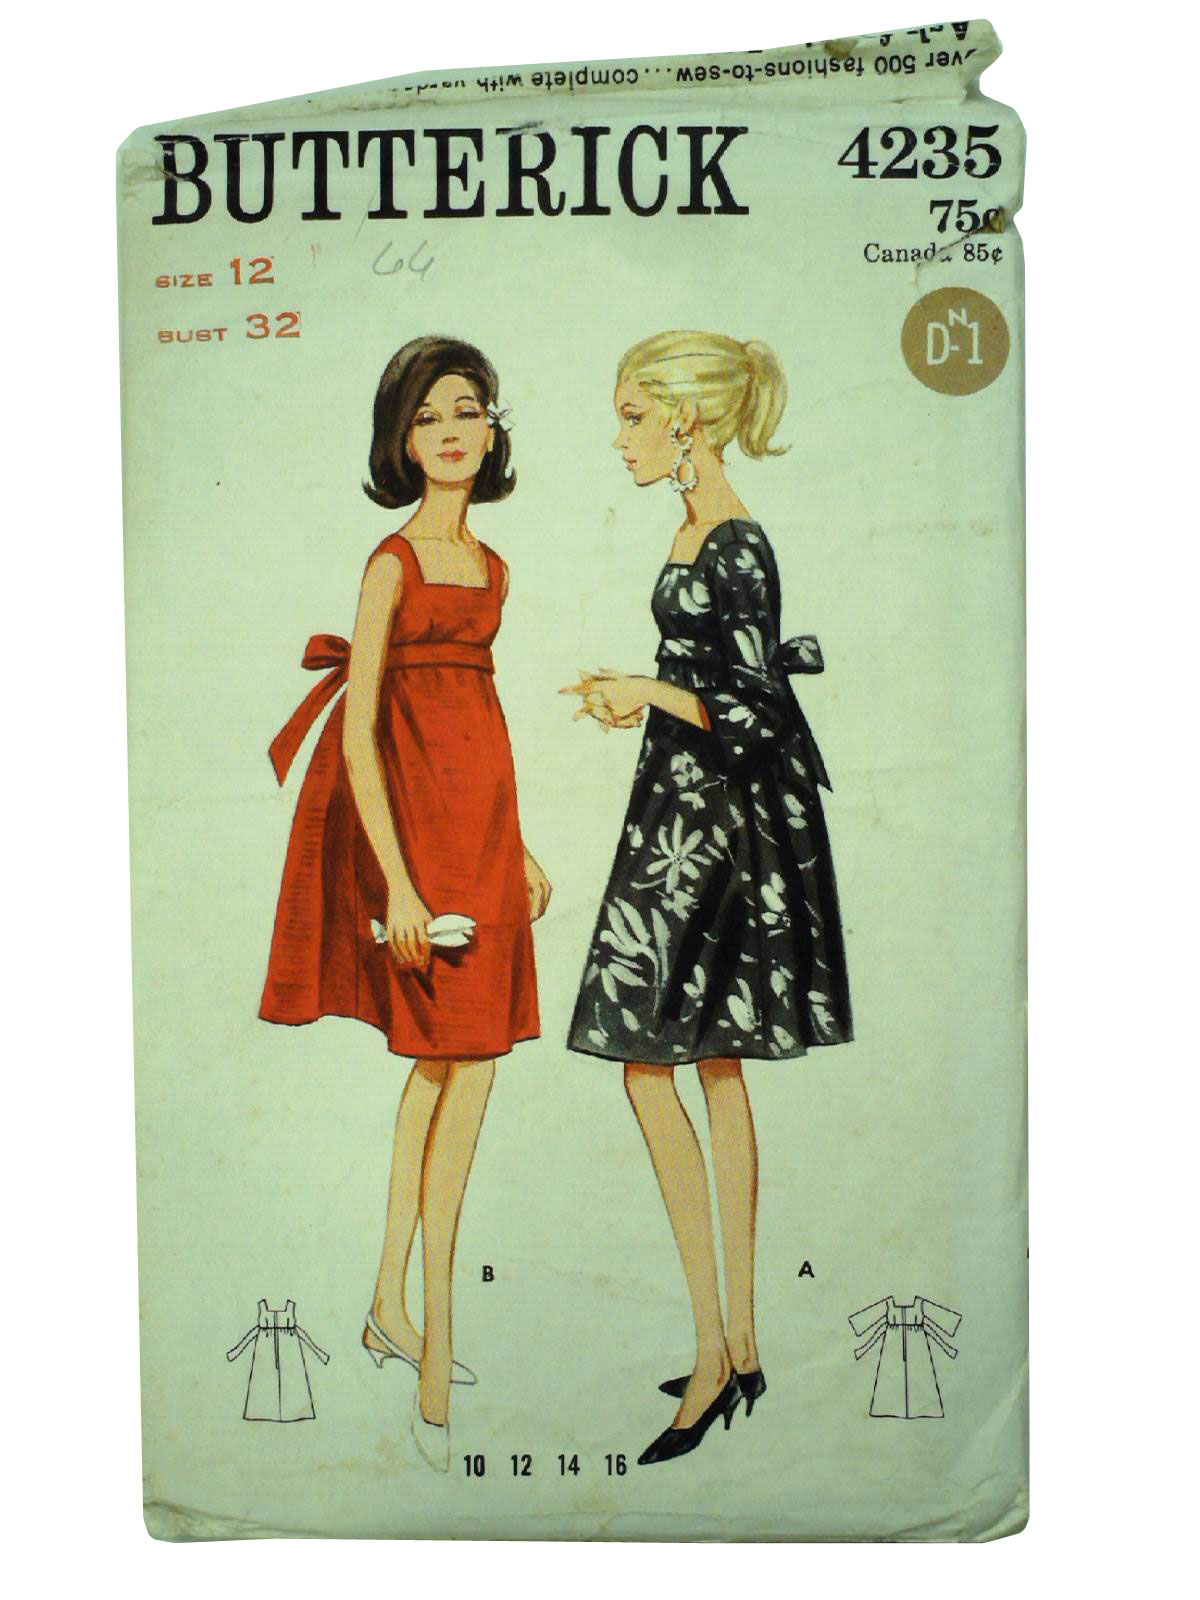 Vintage 1960u0027s Sewing Pattern 60s -Butterick 4235- Womens one-piece mod empire style tent dress pattern with back tie self-belt.  sc 1 st  Rusty Zipper & Vintage 1960u0027s Sewing Pattern: 60s -Butterick 4235- Womens one ...